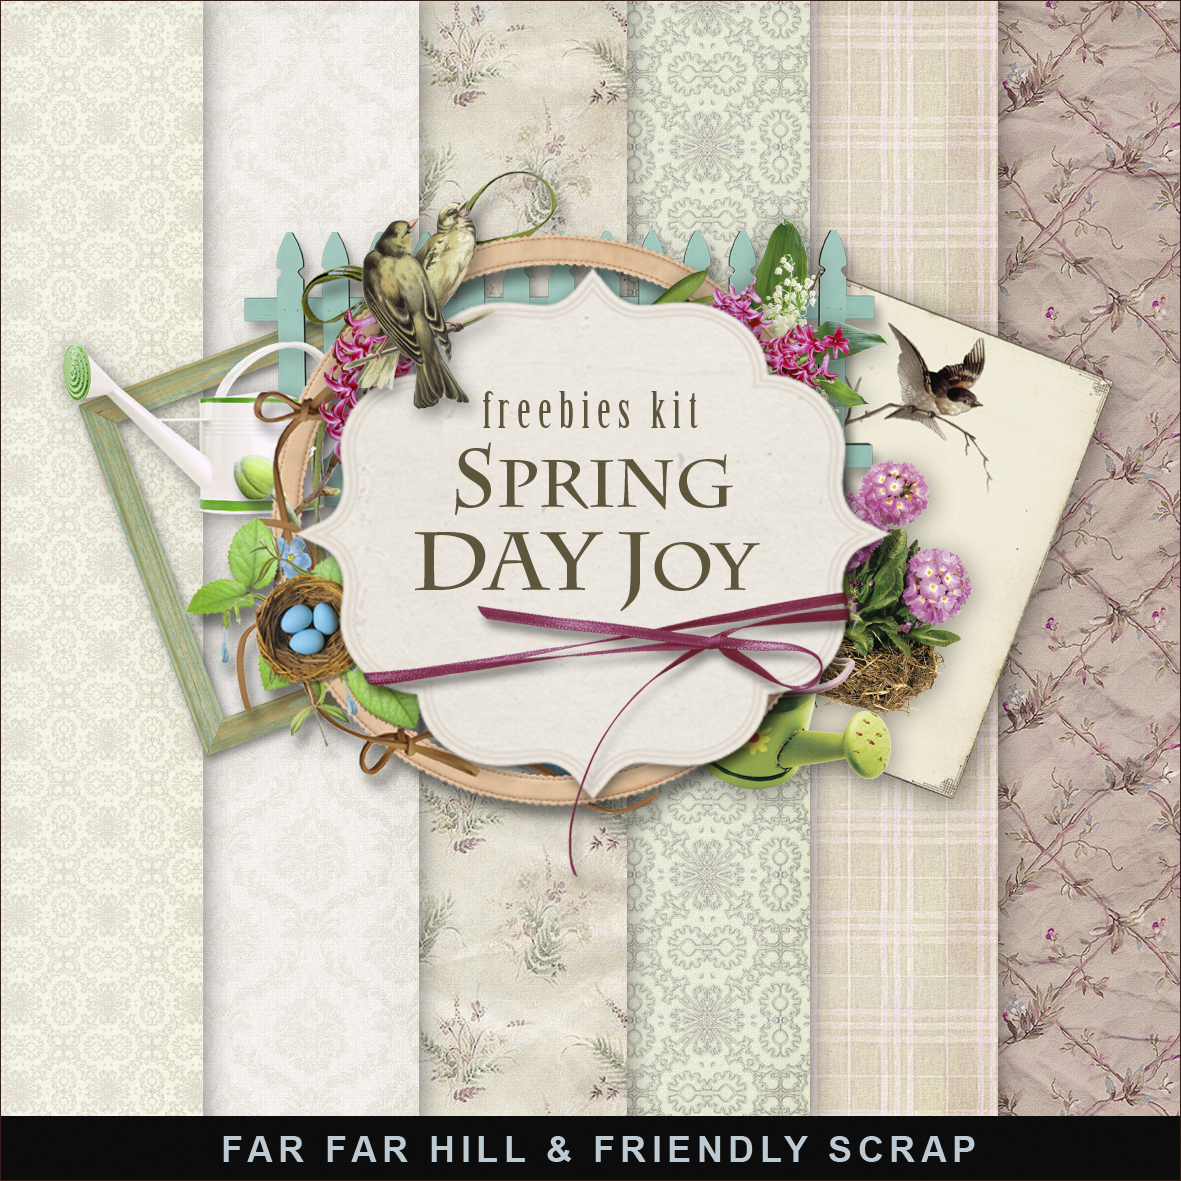 Free digital scrapbook kits from far far hill ipietoon cute blog free digital scrapbook kits from far far hill ipietoon cute blog design maxwellsz